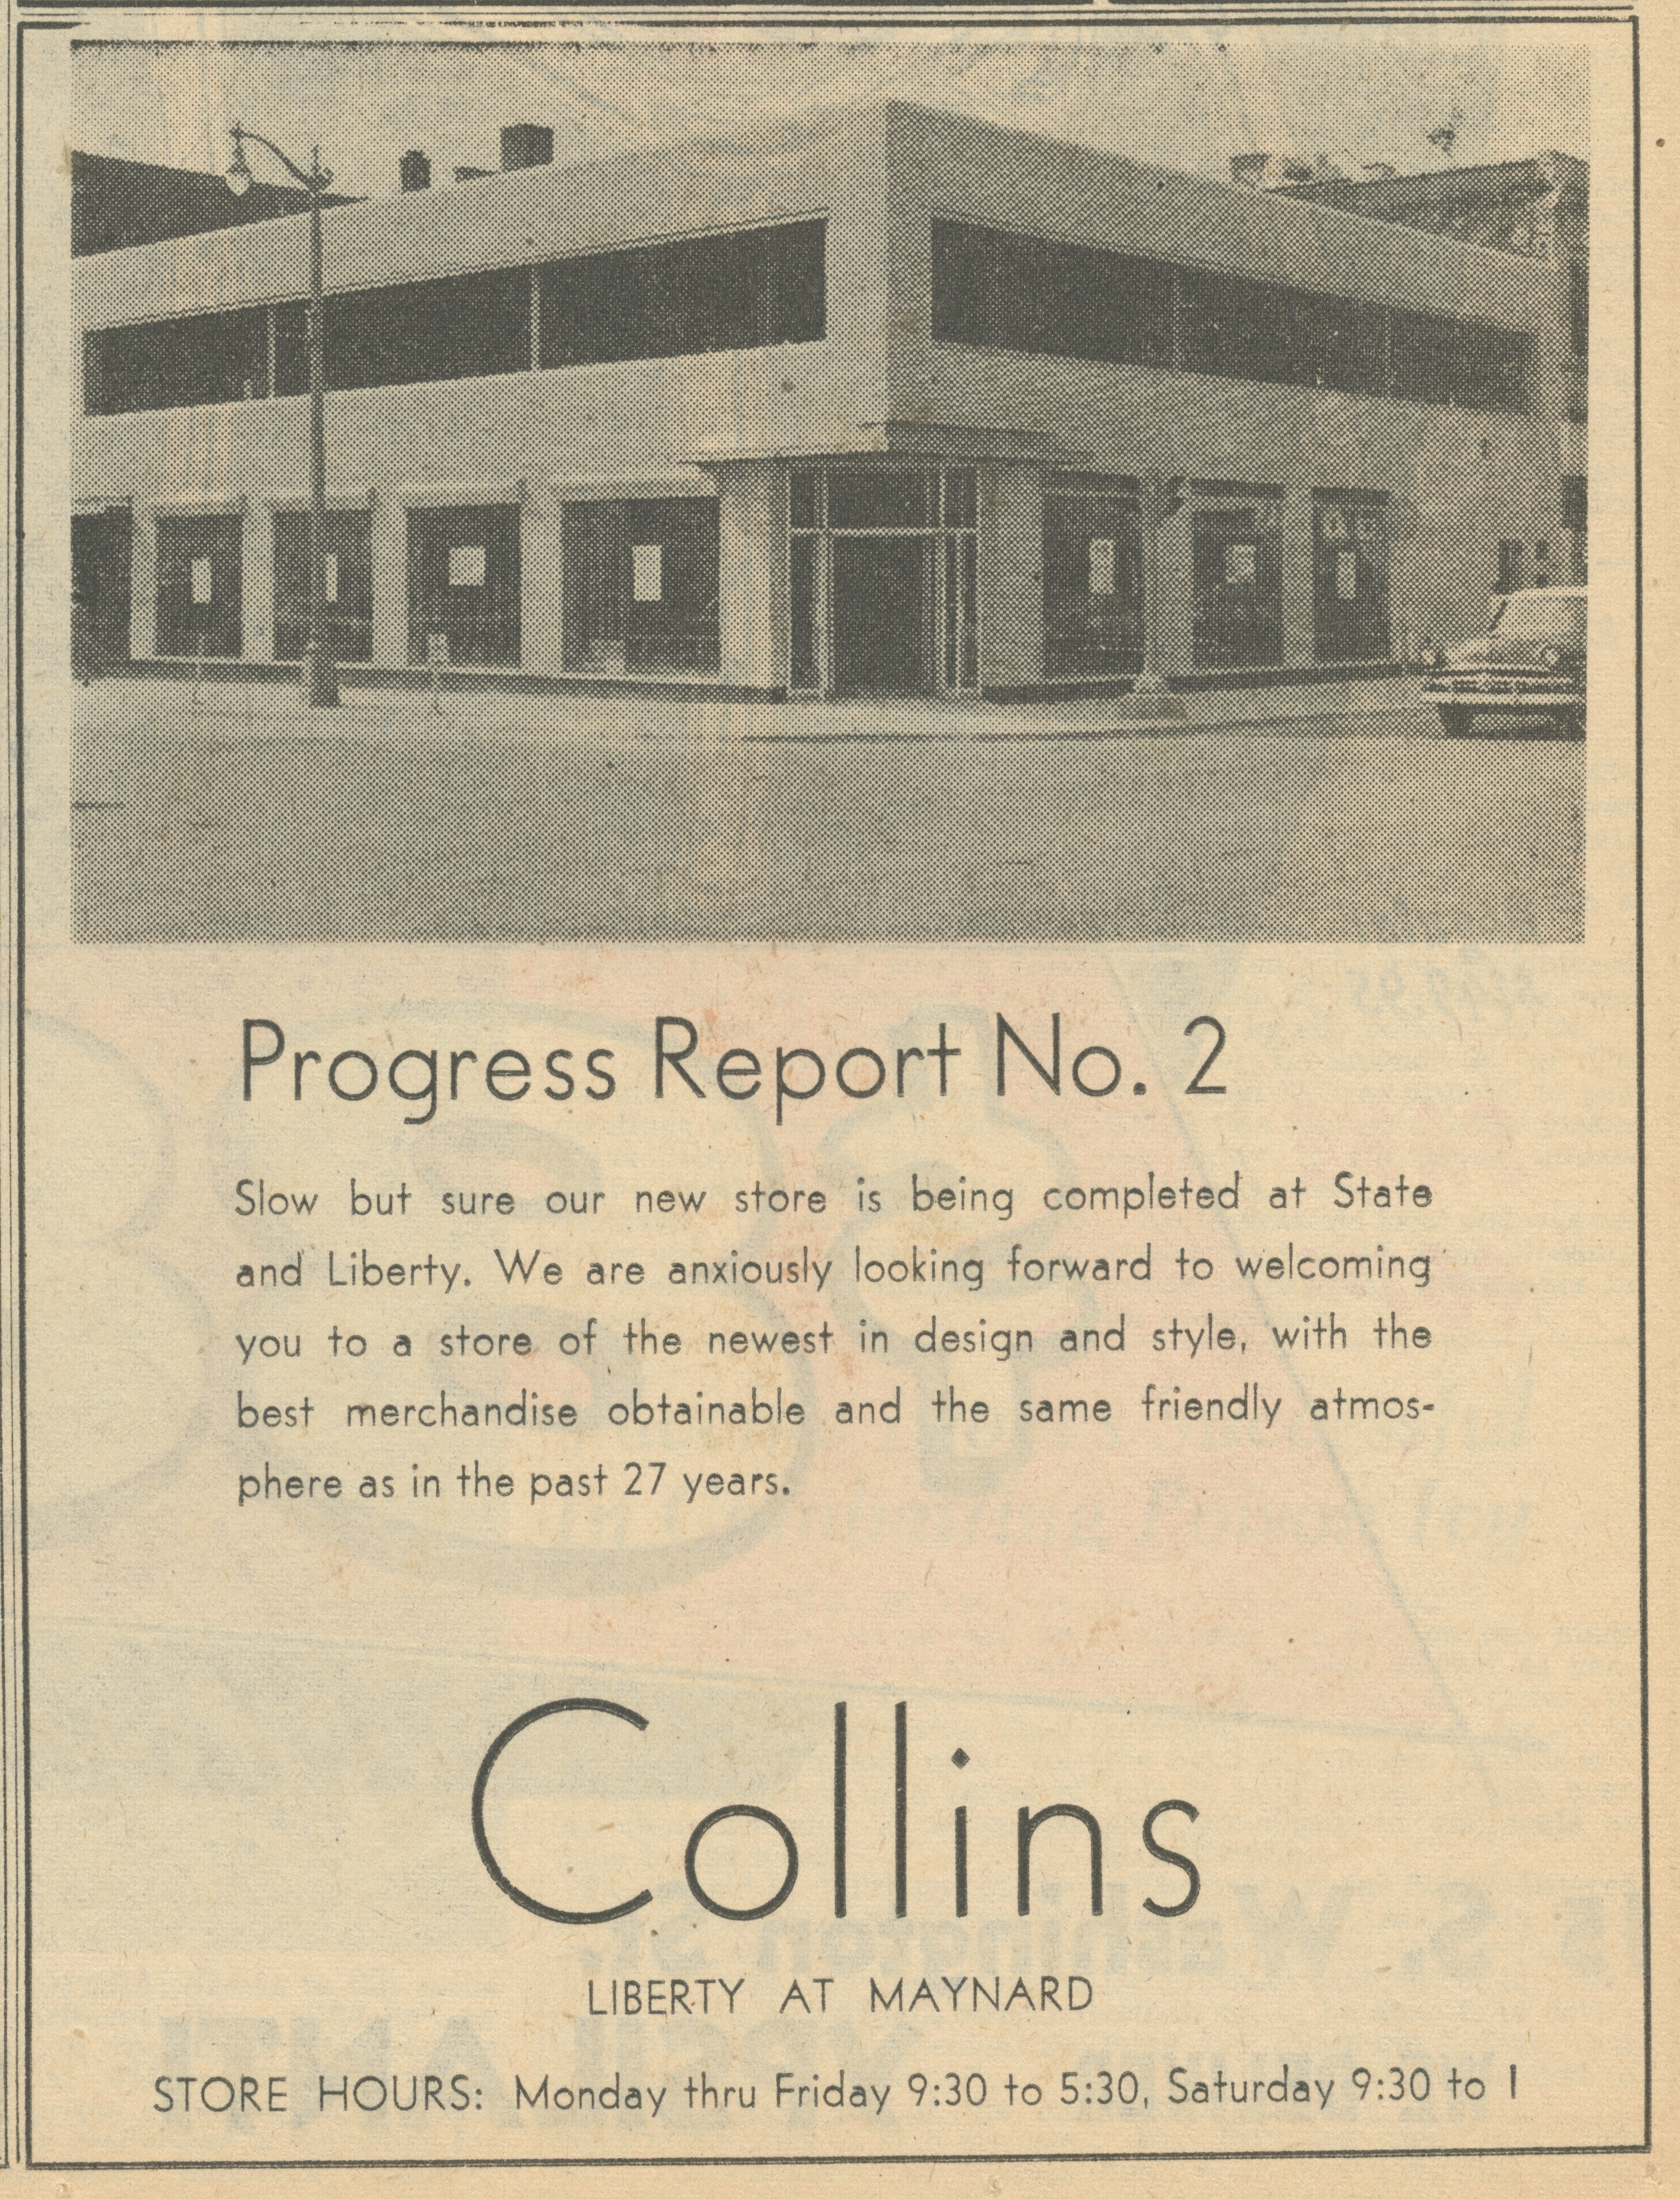 Collins image